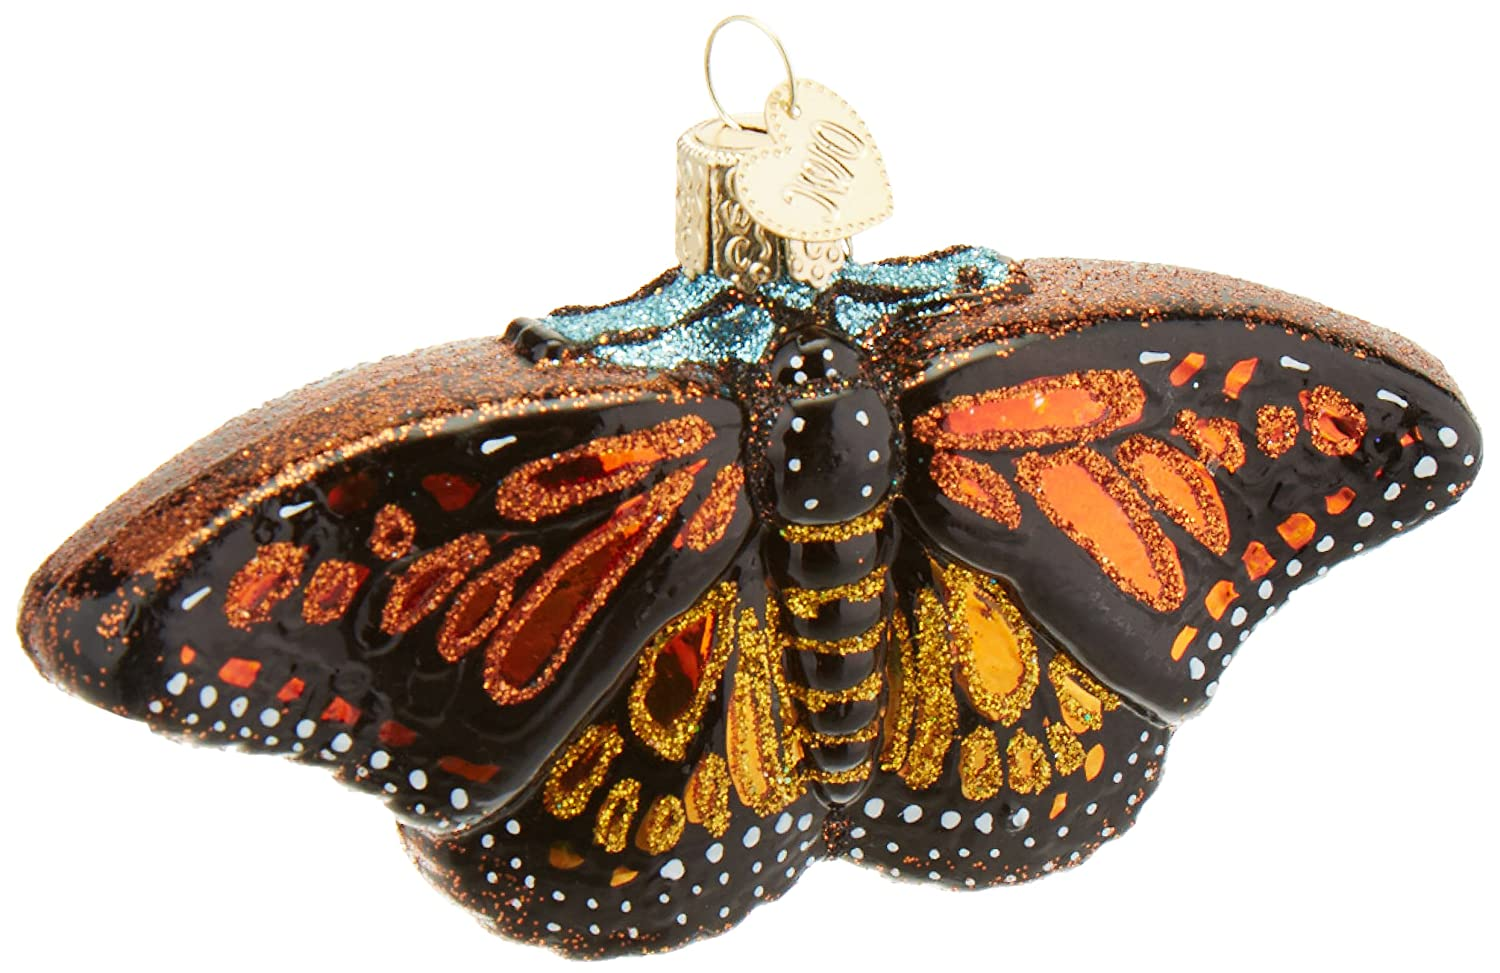 Old World Christmas Ornaments: Monarch Butterfly Glass Blown Ornaments for Christmas Tree 12475